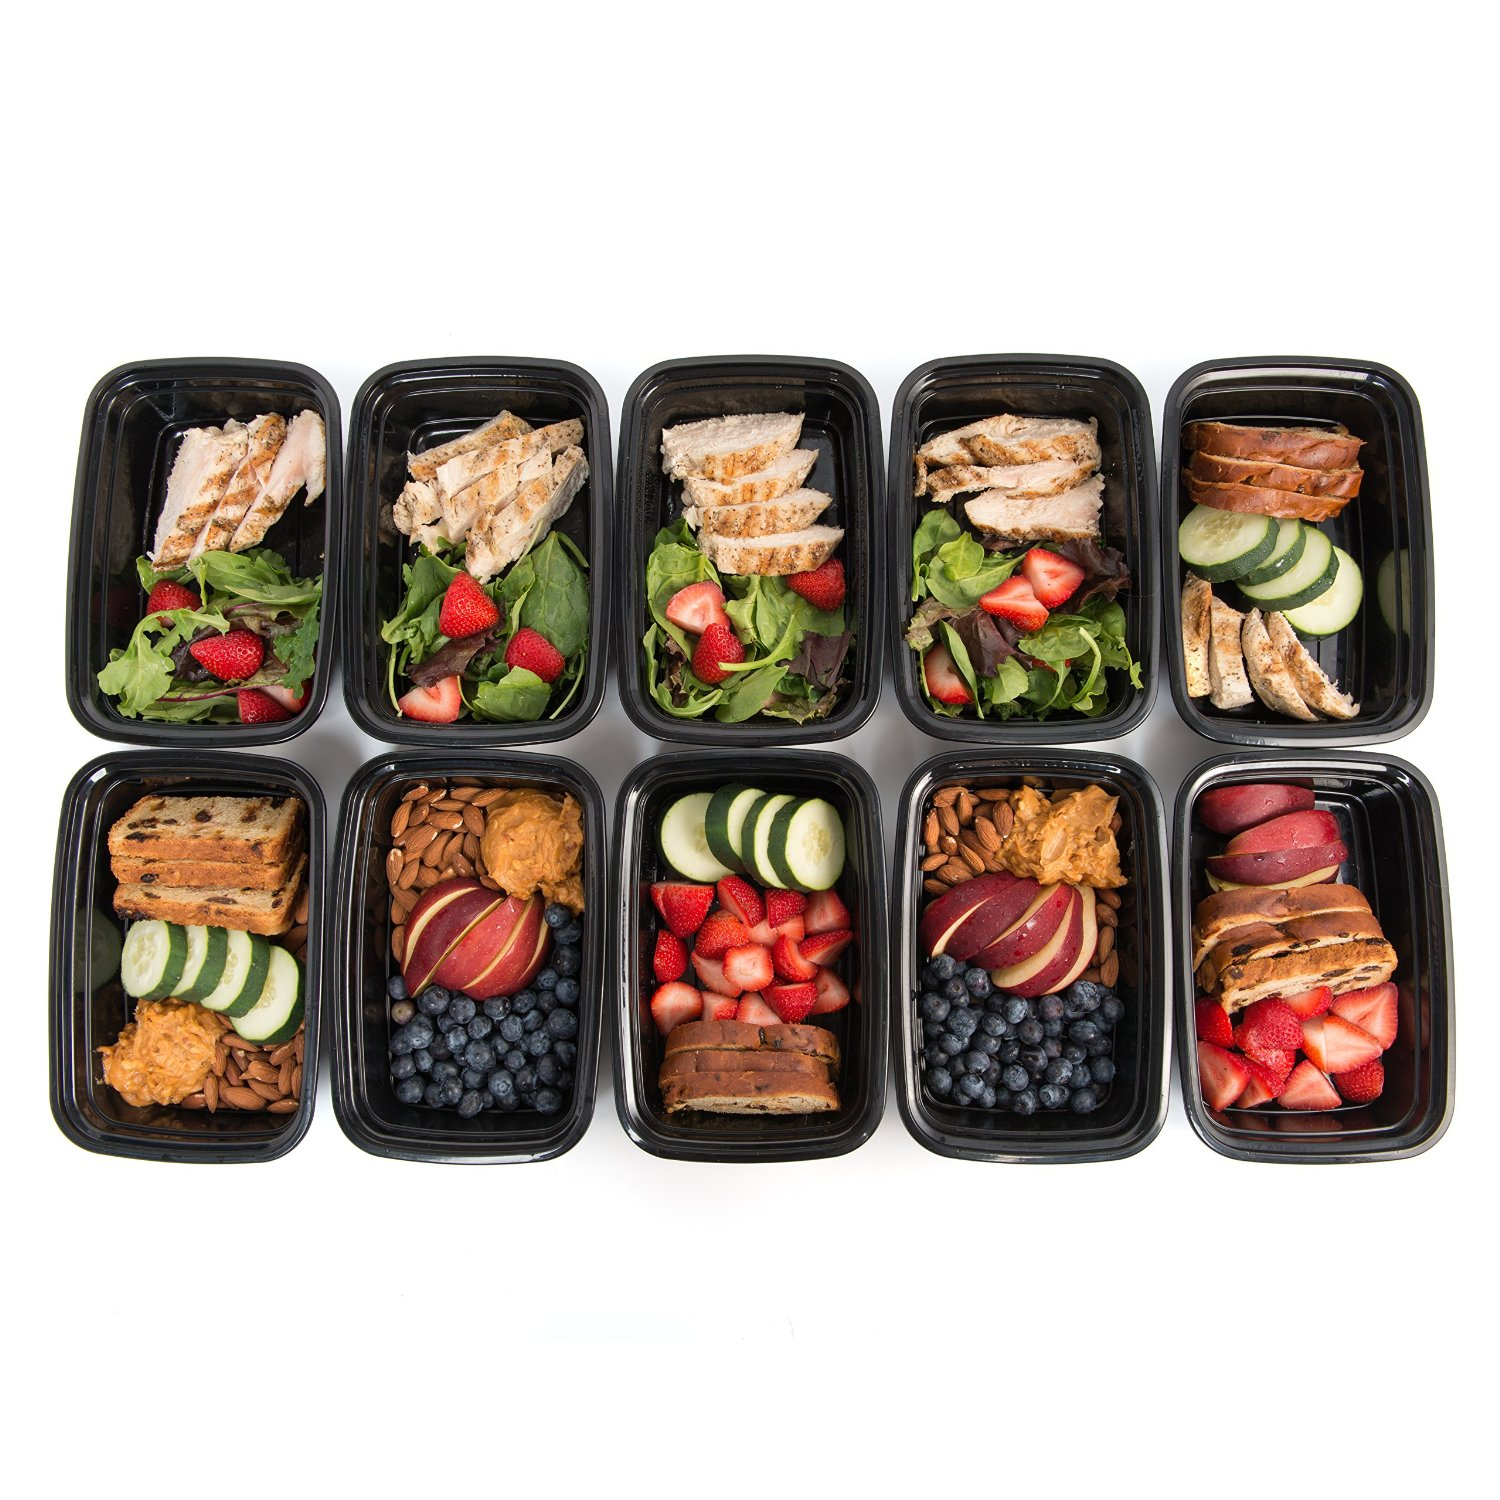 10 meal prep food containers 1 compartment bpa free plastic lunch box with lids ebay. Black Bedroom Furniture Sets. Home Design Ideas